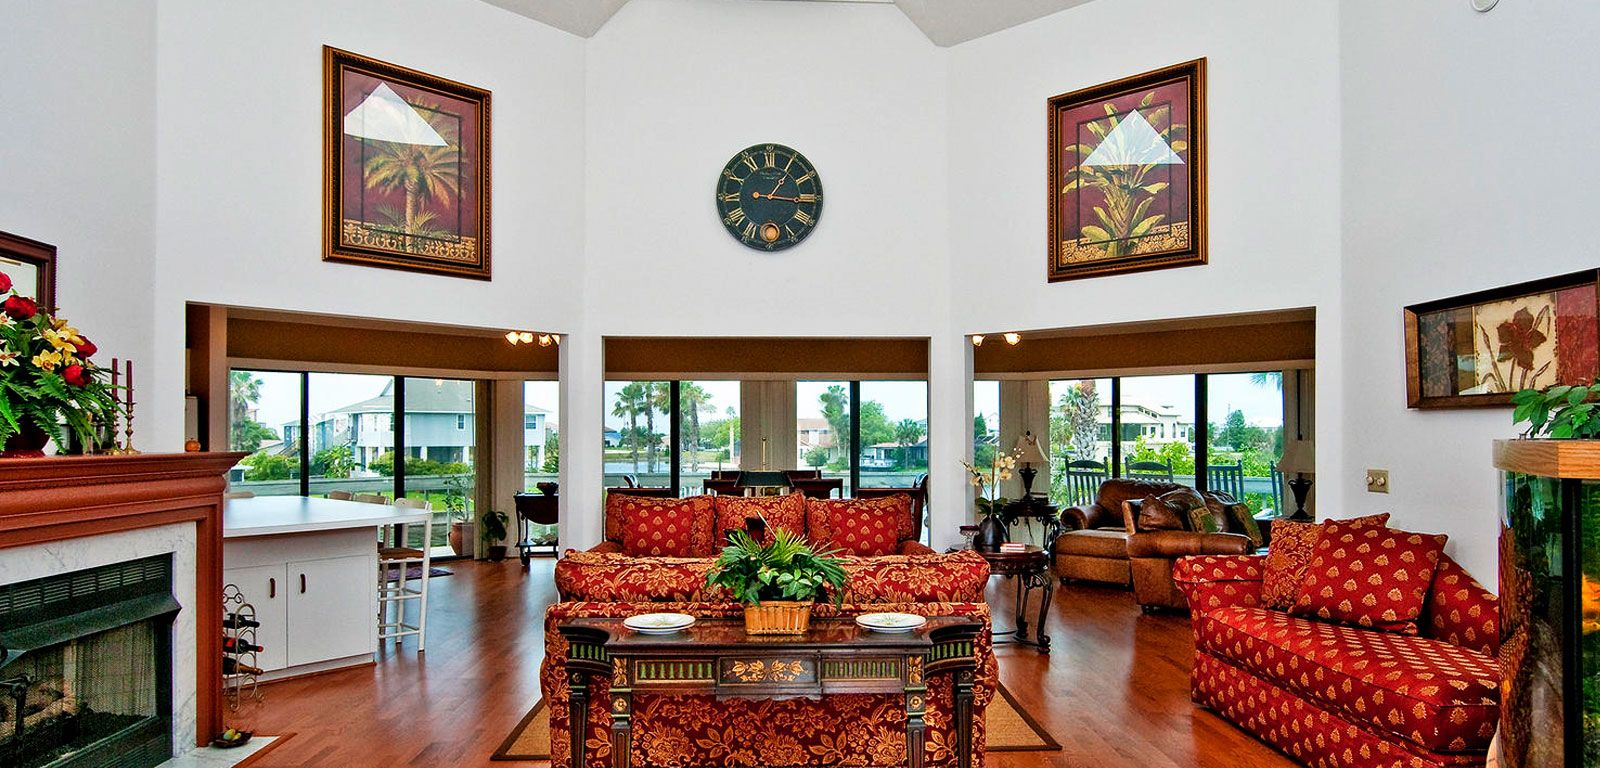 Living room with tree big windows and red sofa